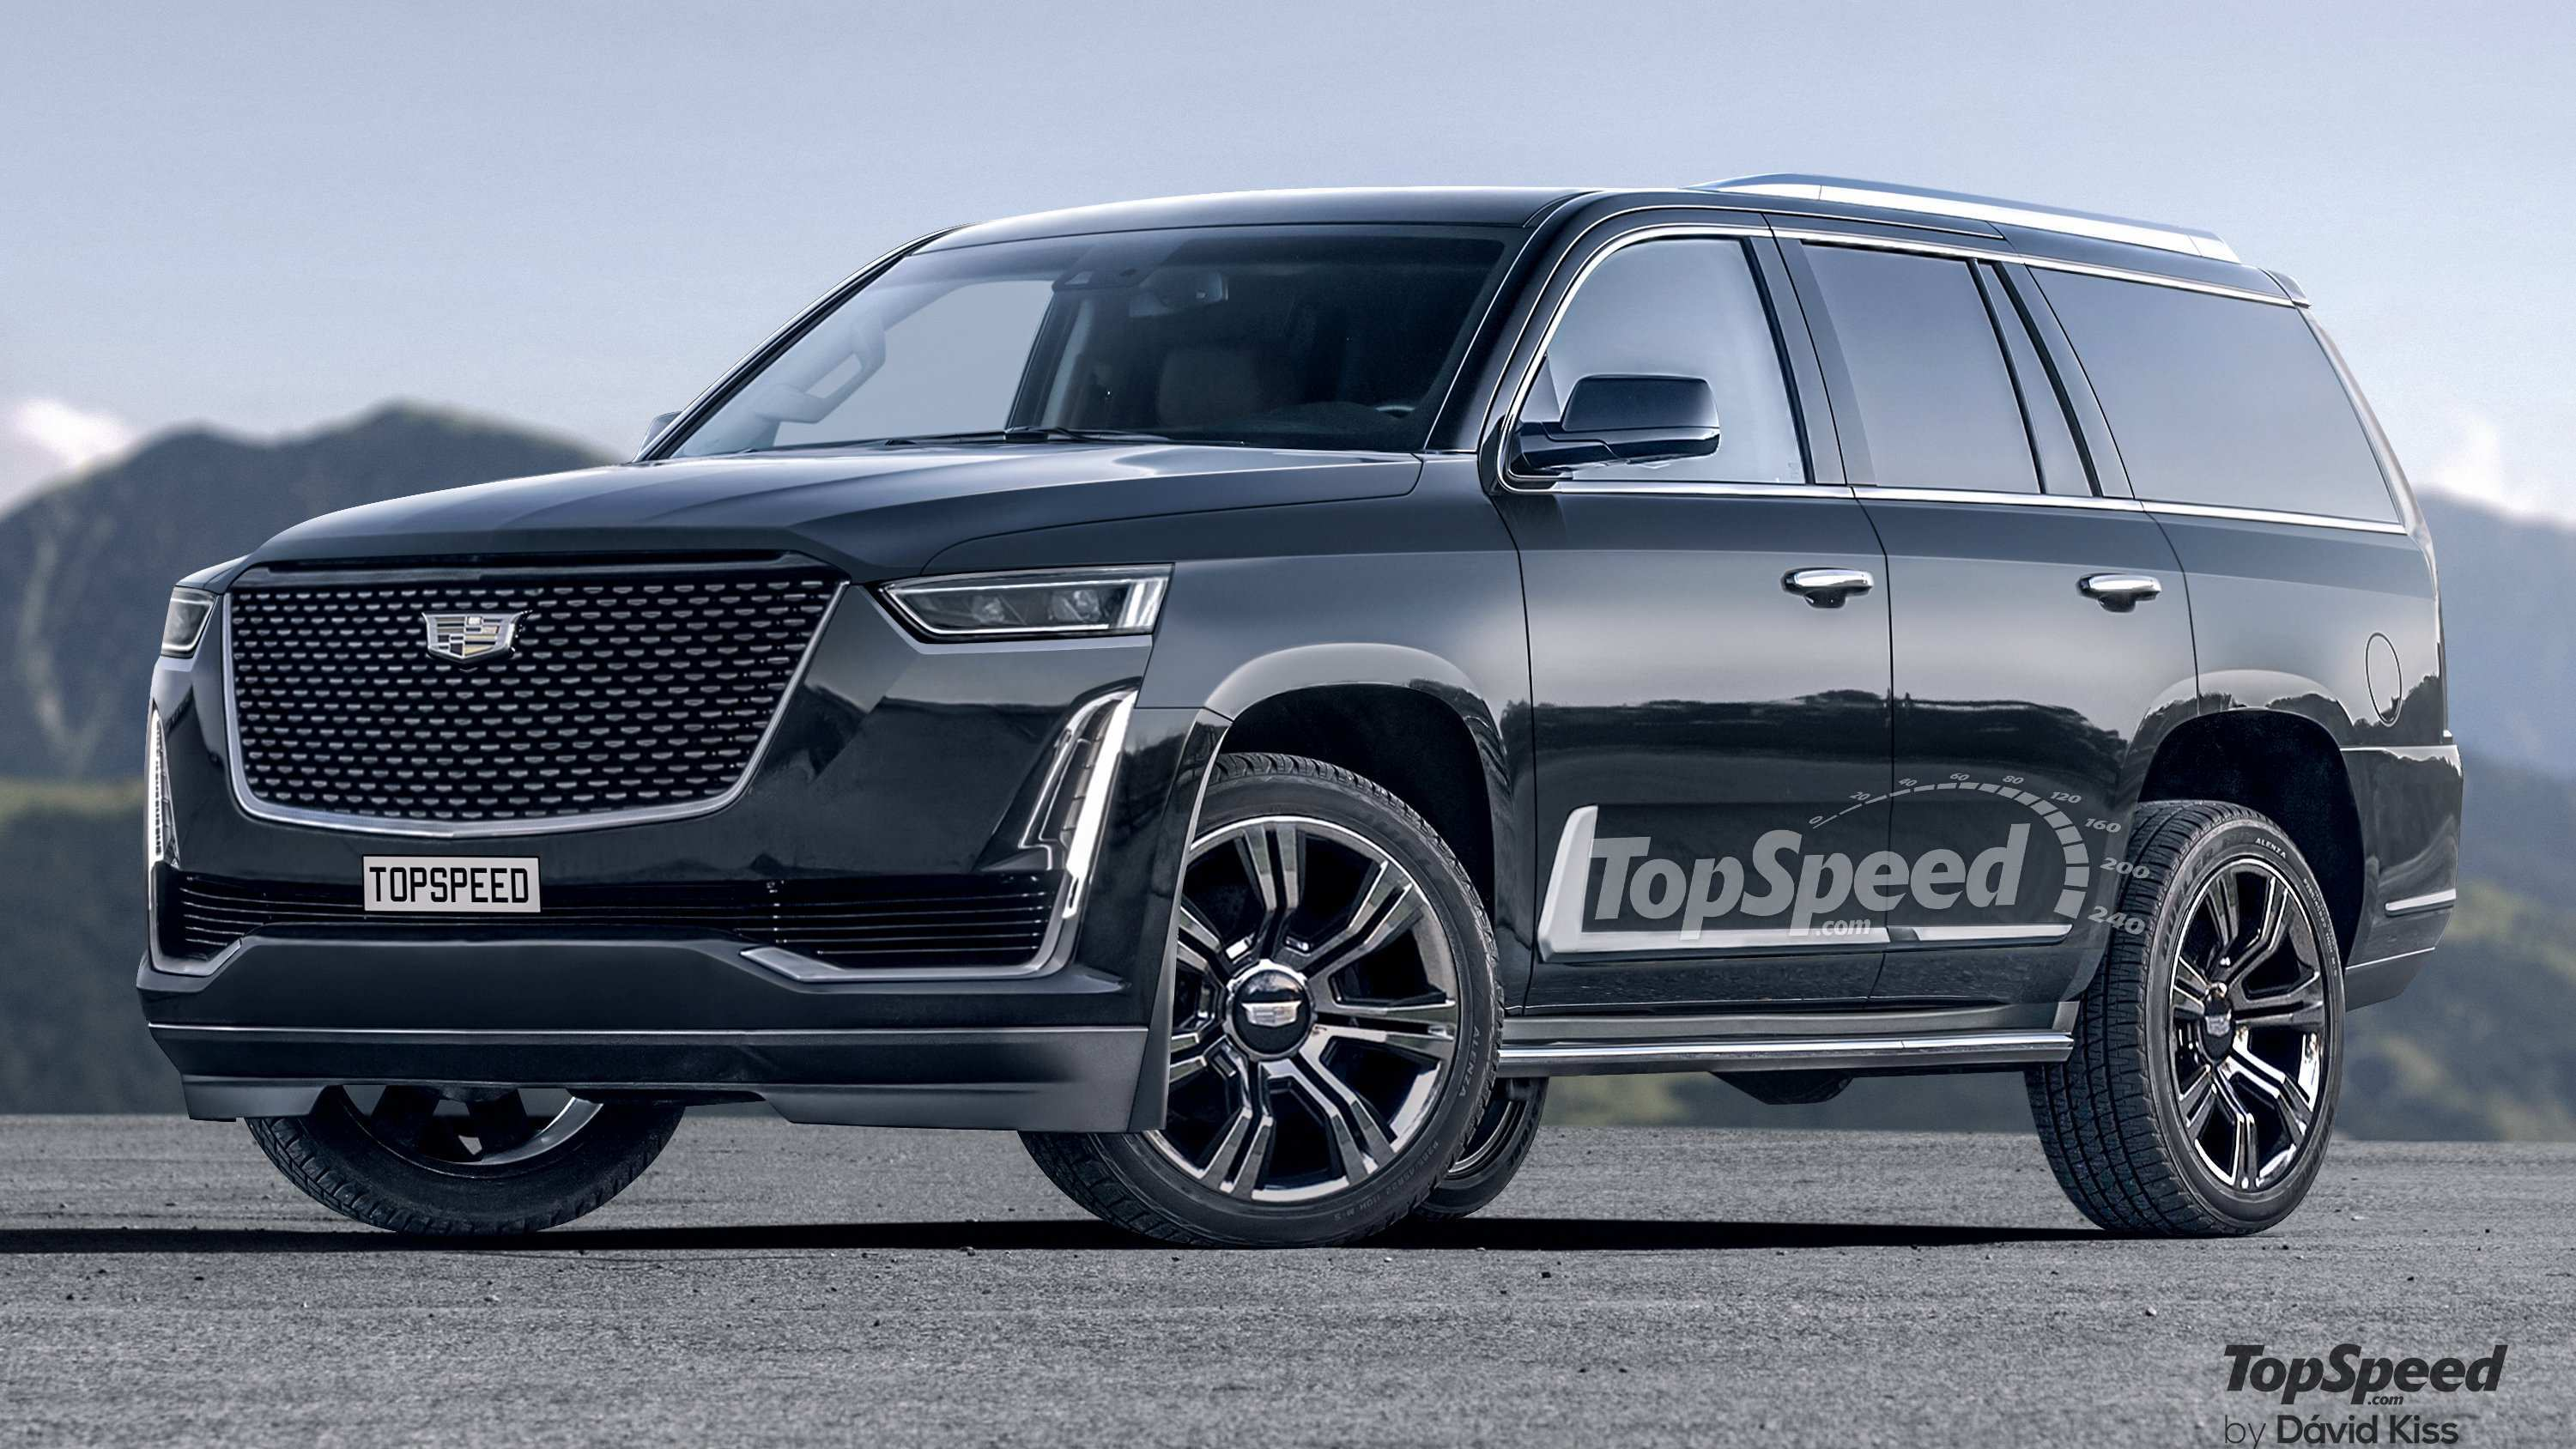 16 All New Gmc Yukon 2020 Model Specs and Review for Gmc Yukon 2020 Model